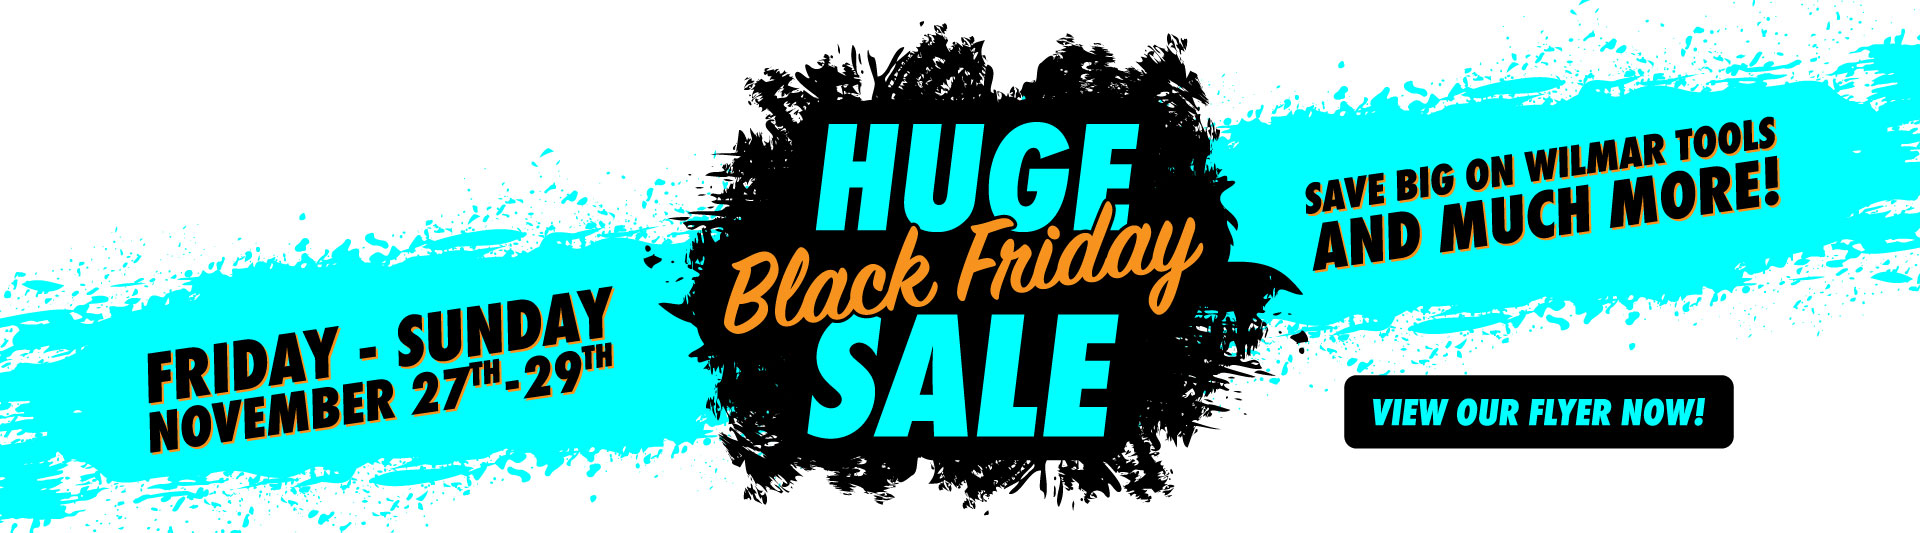 Huge Black Friday Sale is November 27th through 29th